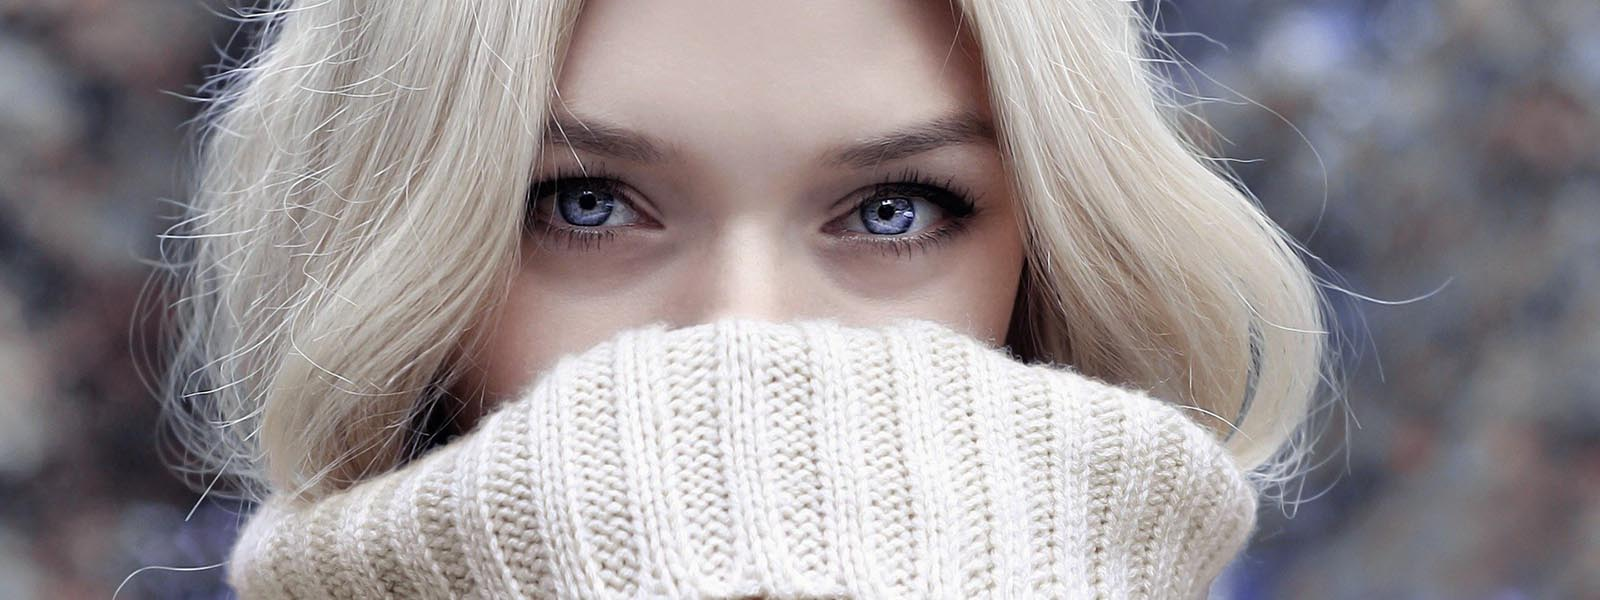 Woman's face hiding in winter scarf